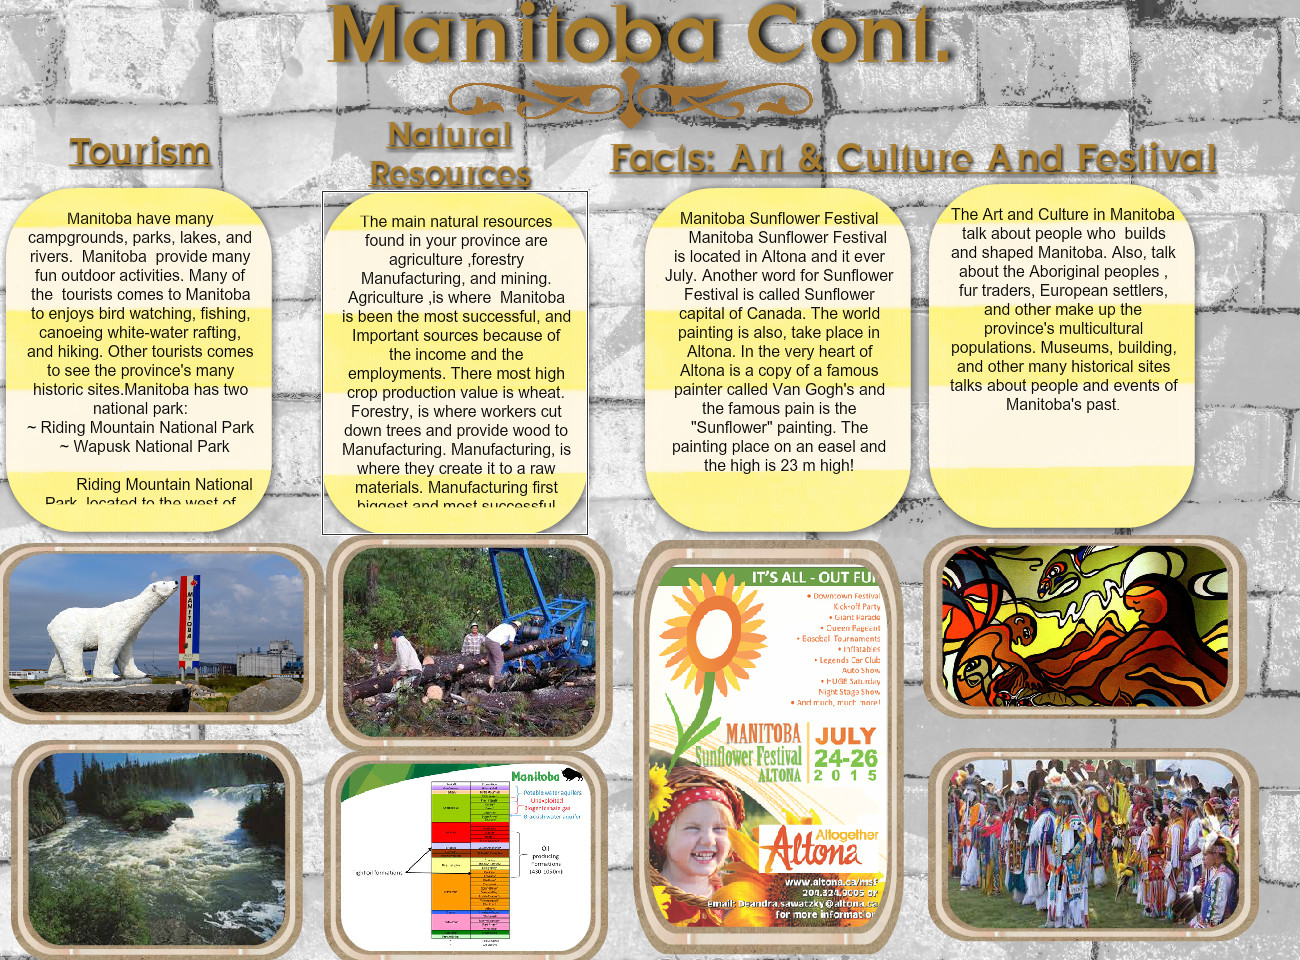 [2016] Person Bot (Peterson Applied Geog.): Manitoba Cont.